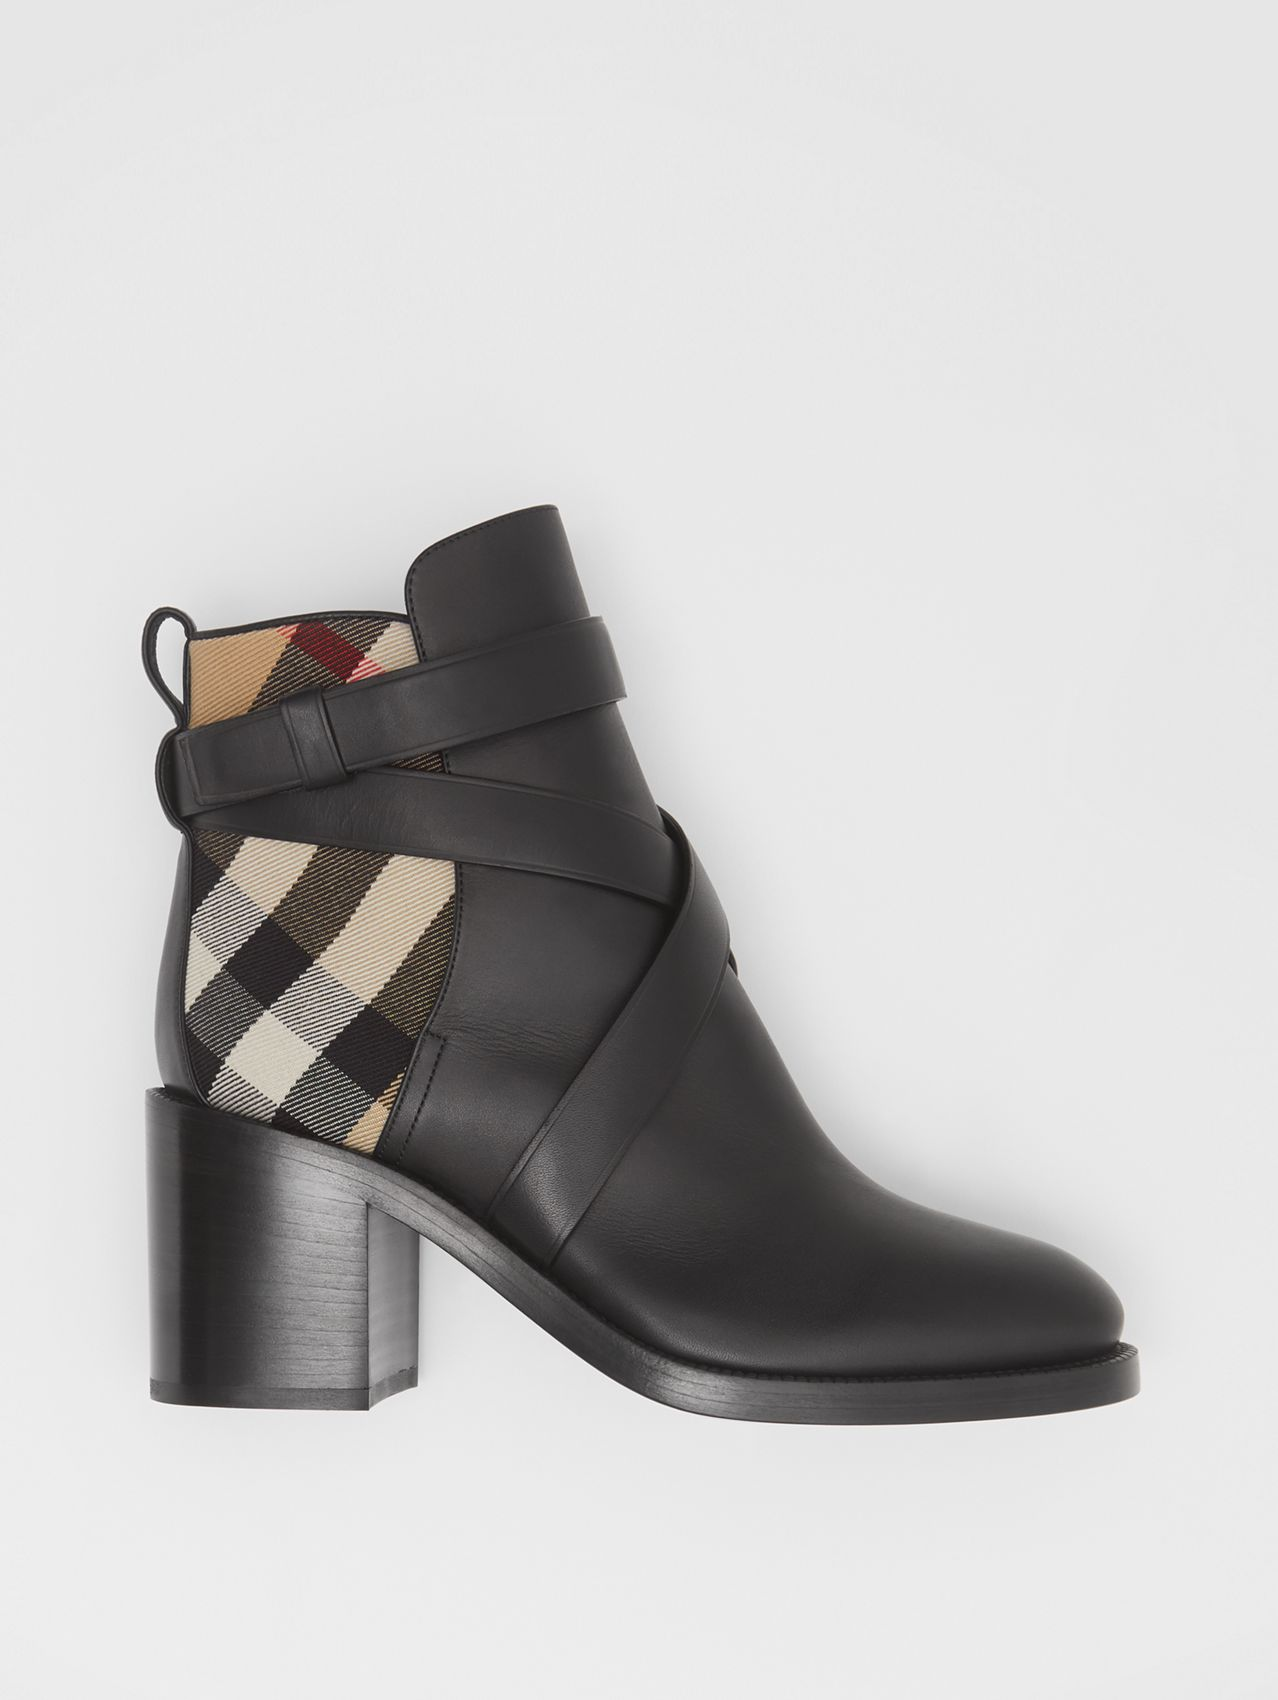 Bottines en cuir et Vintage check in Noir/beige D'archive